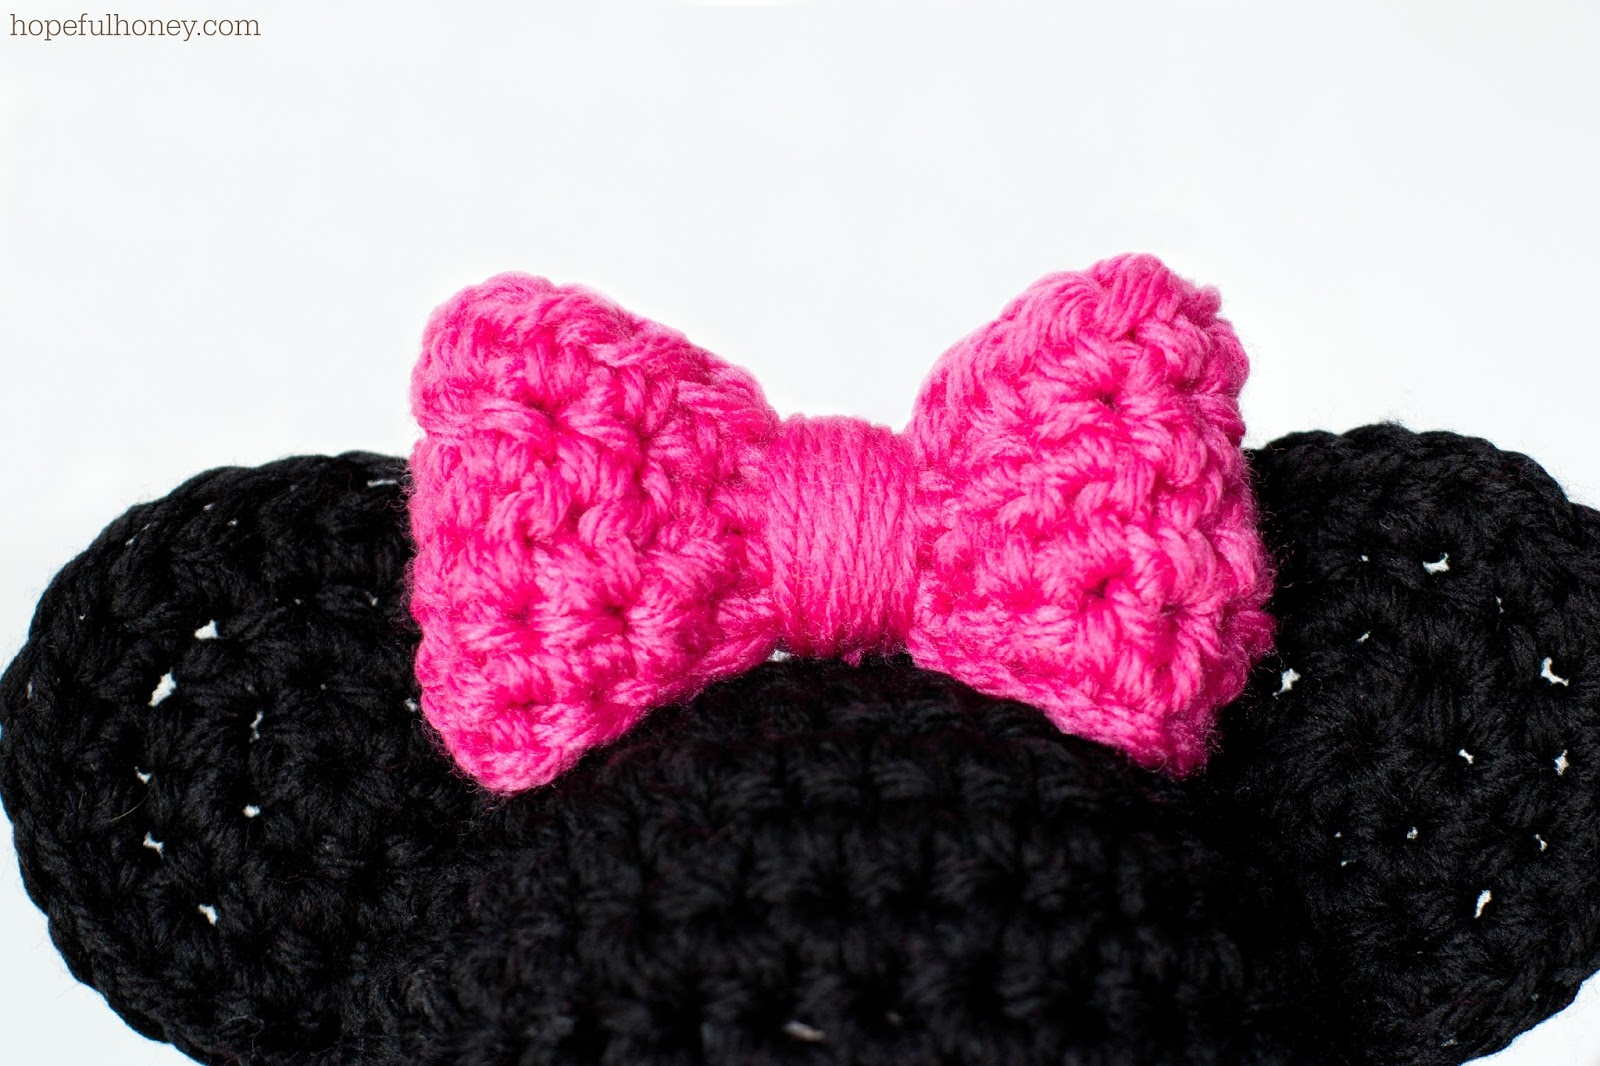 Crochet Patterns For Minnie Mouse : Hopeful Honey Craft, Crochet, Create: Newborn Minnie ...